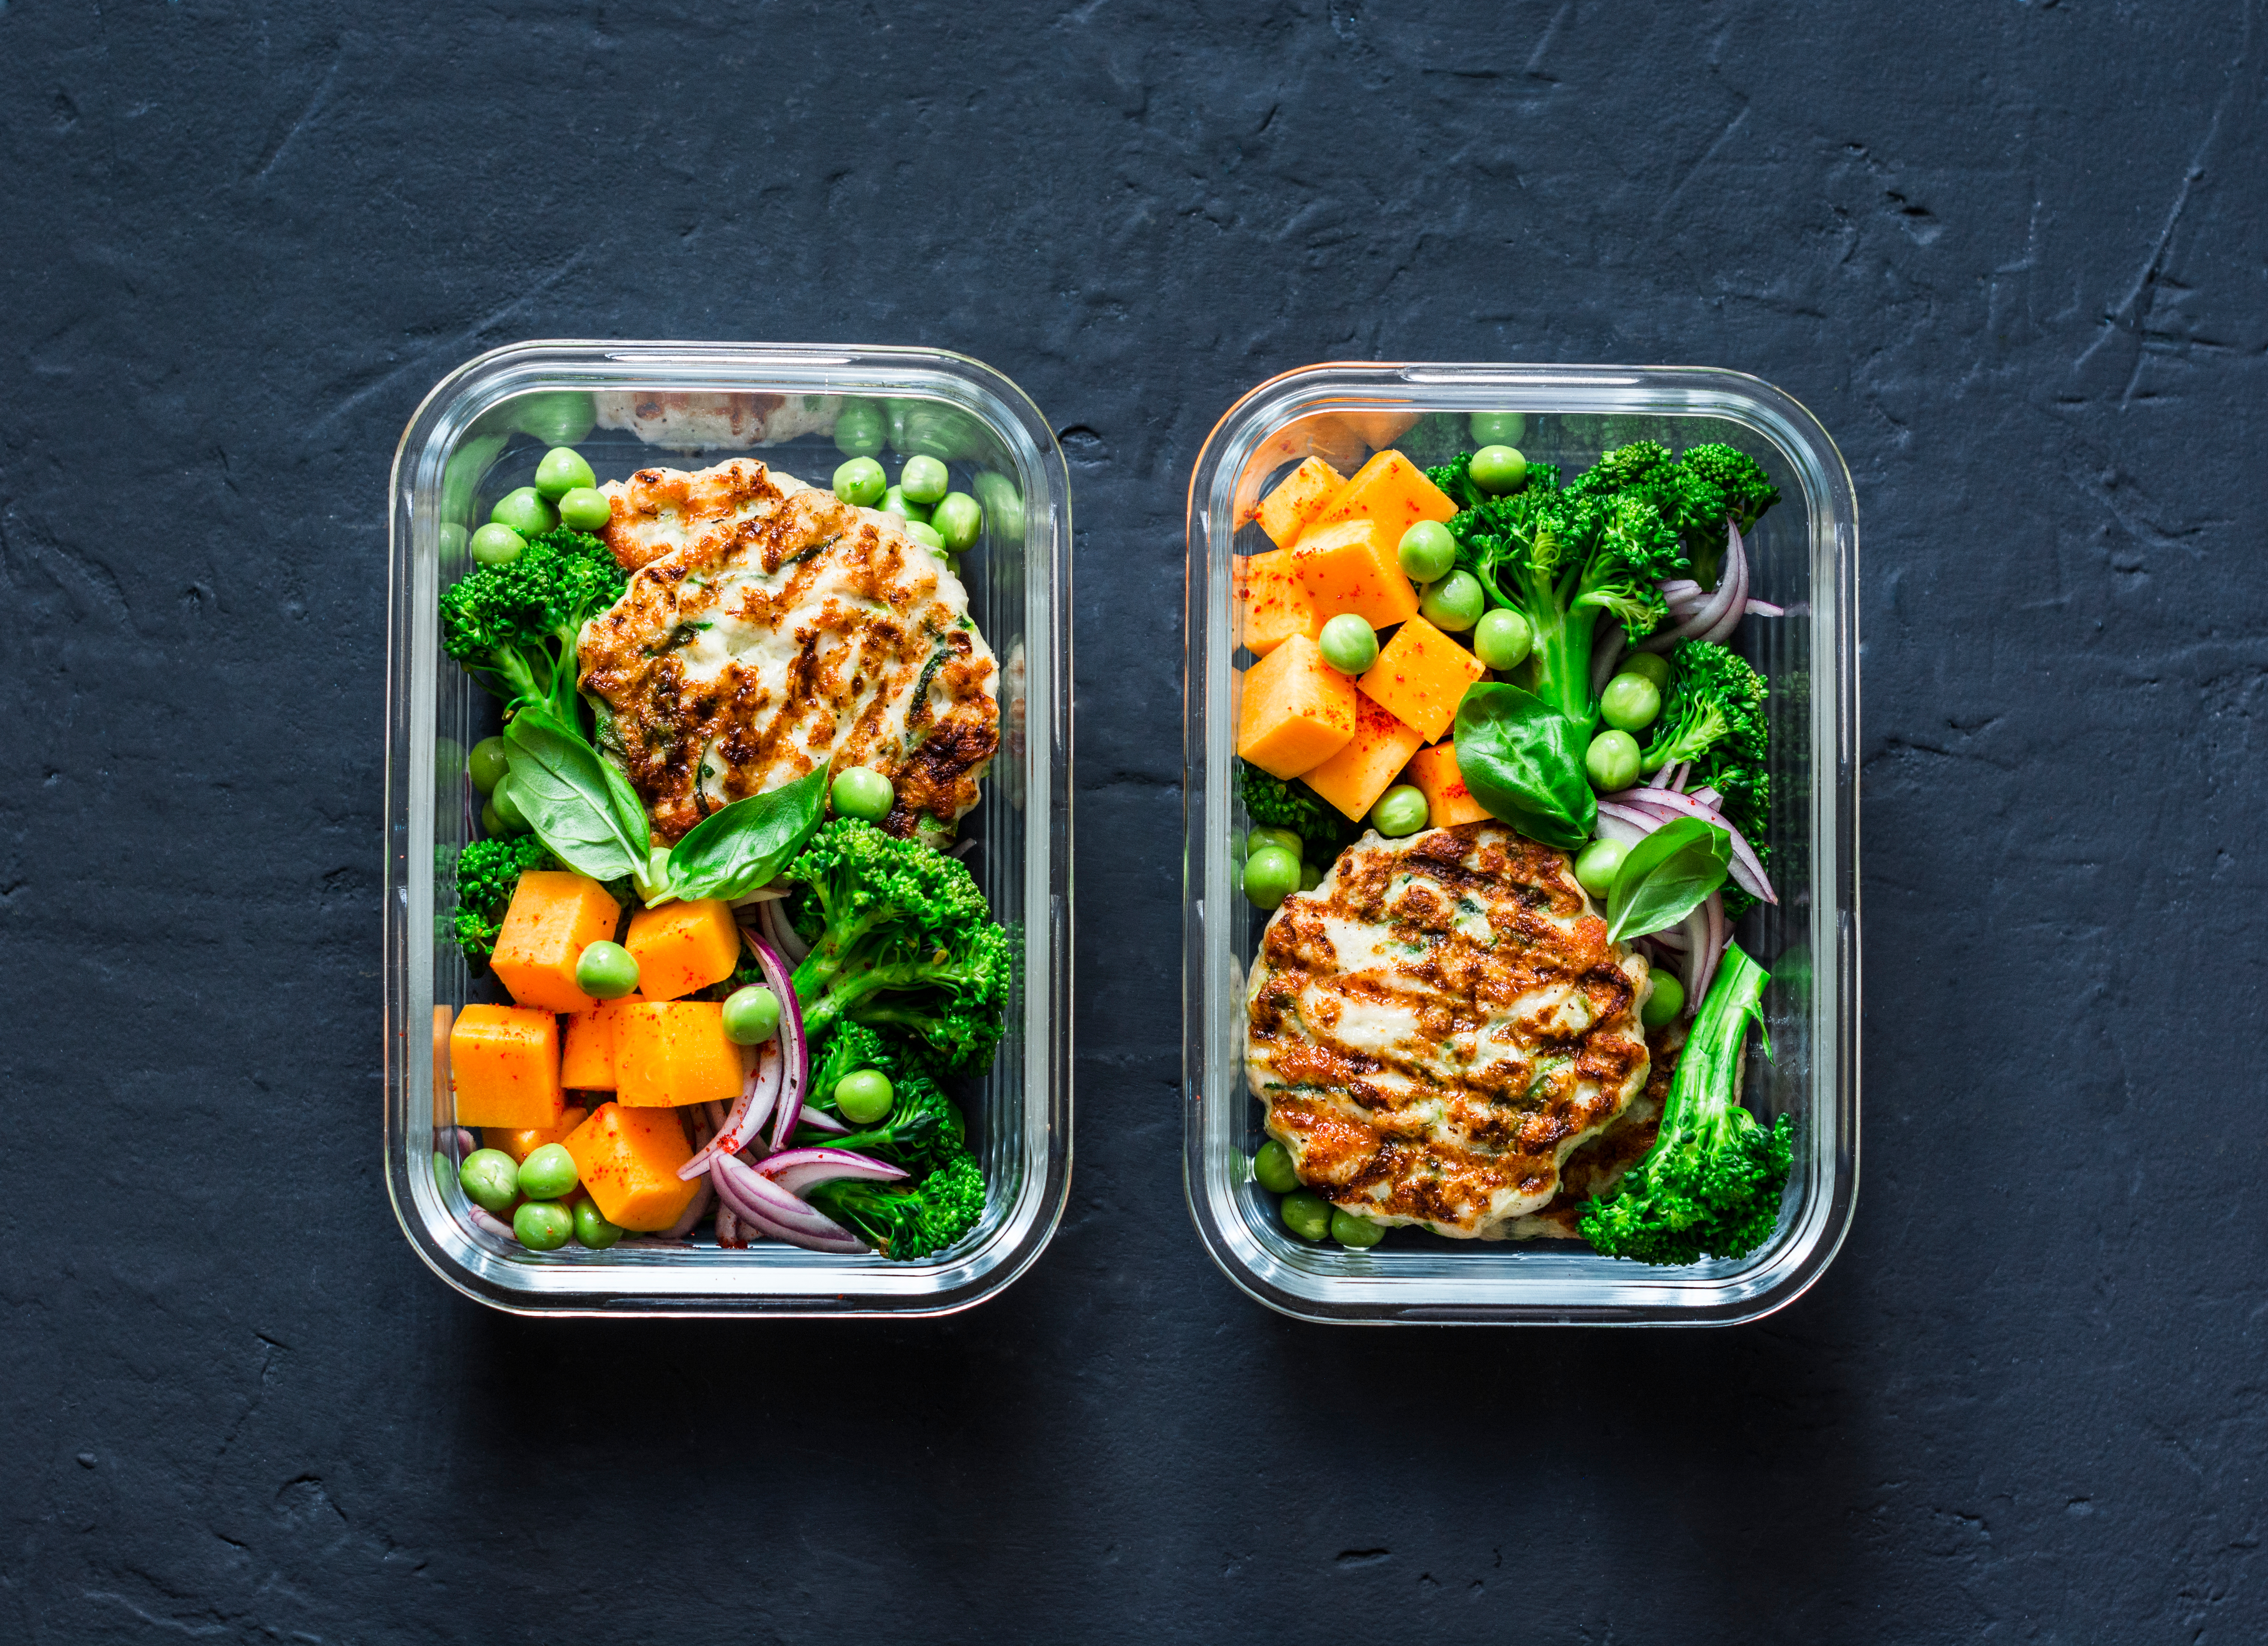 Healthy balanced lunch box. Grilled chic